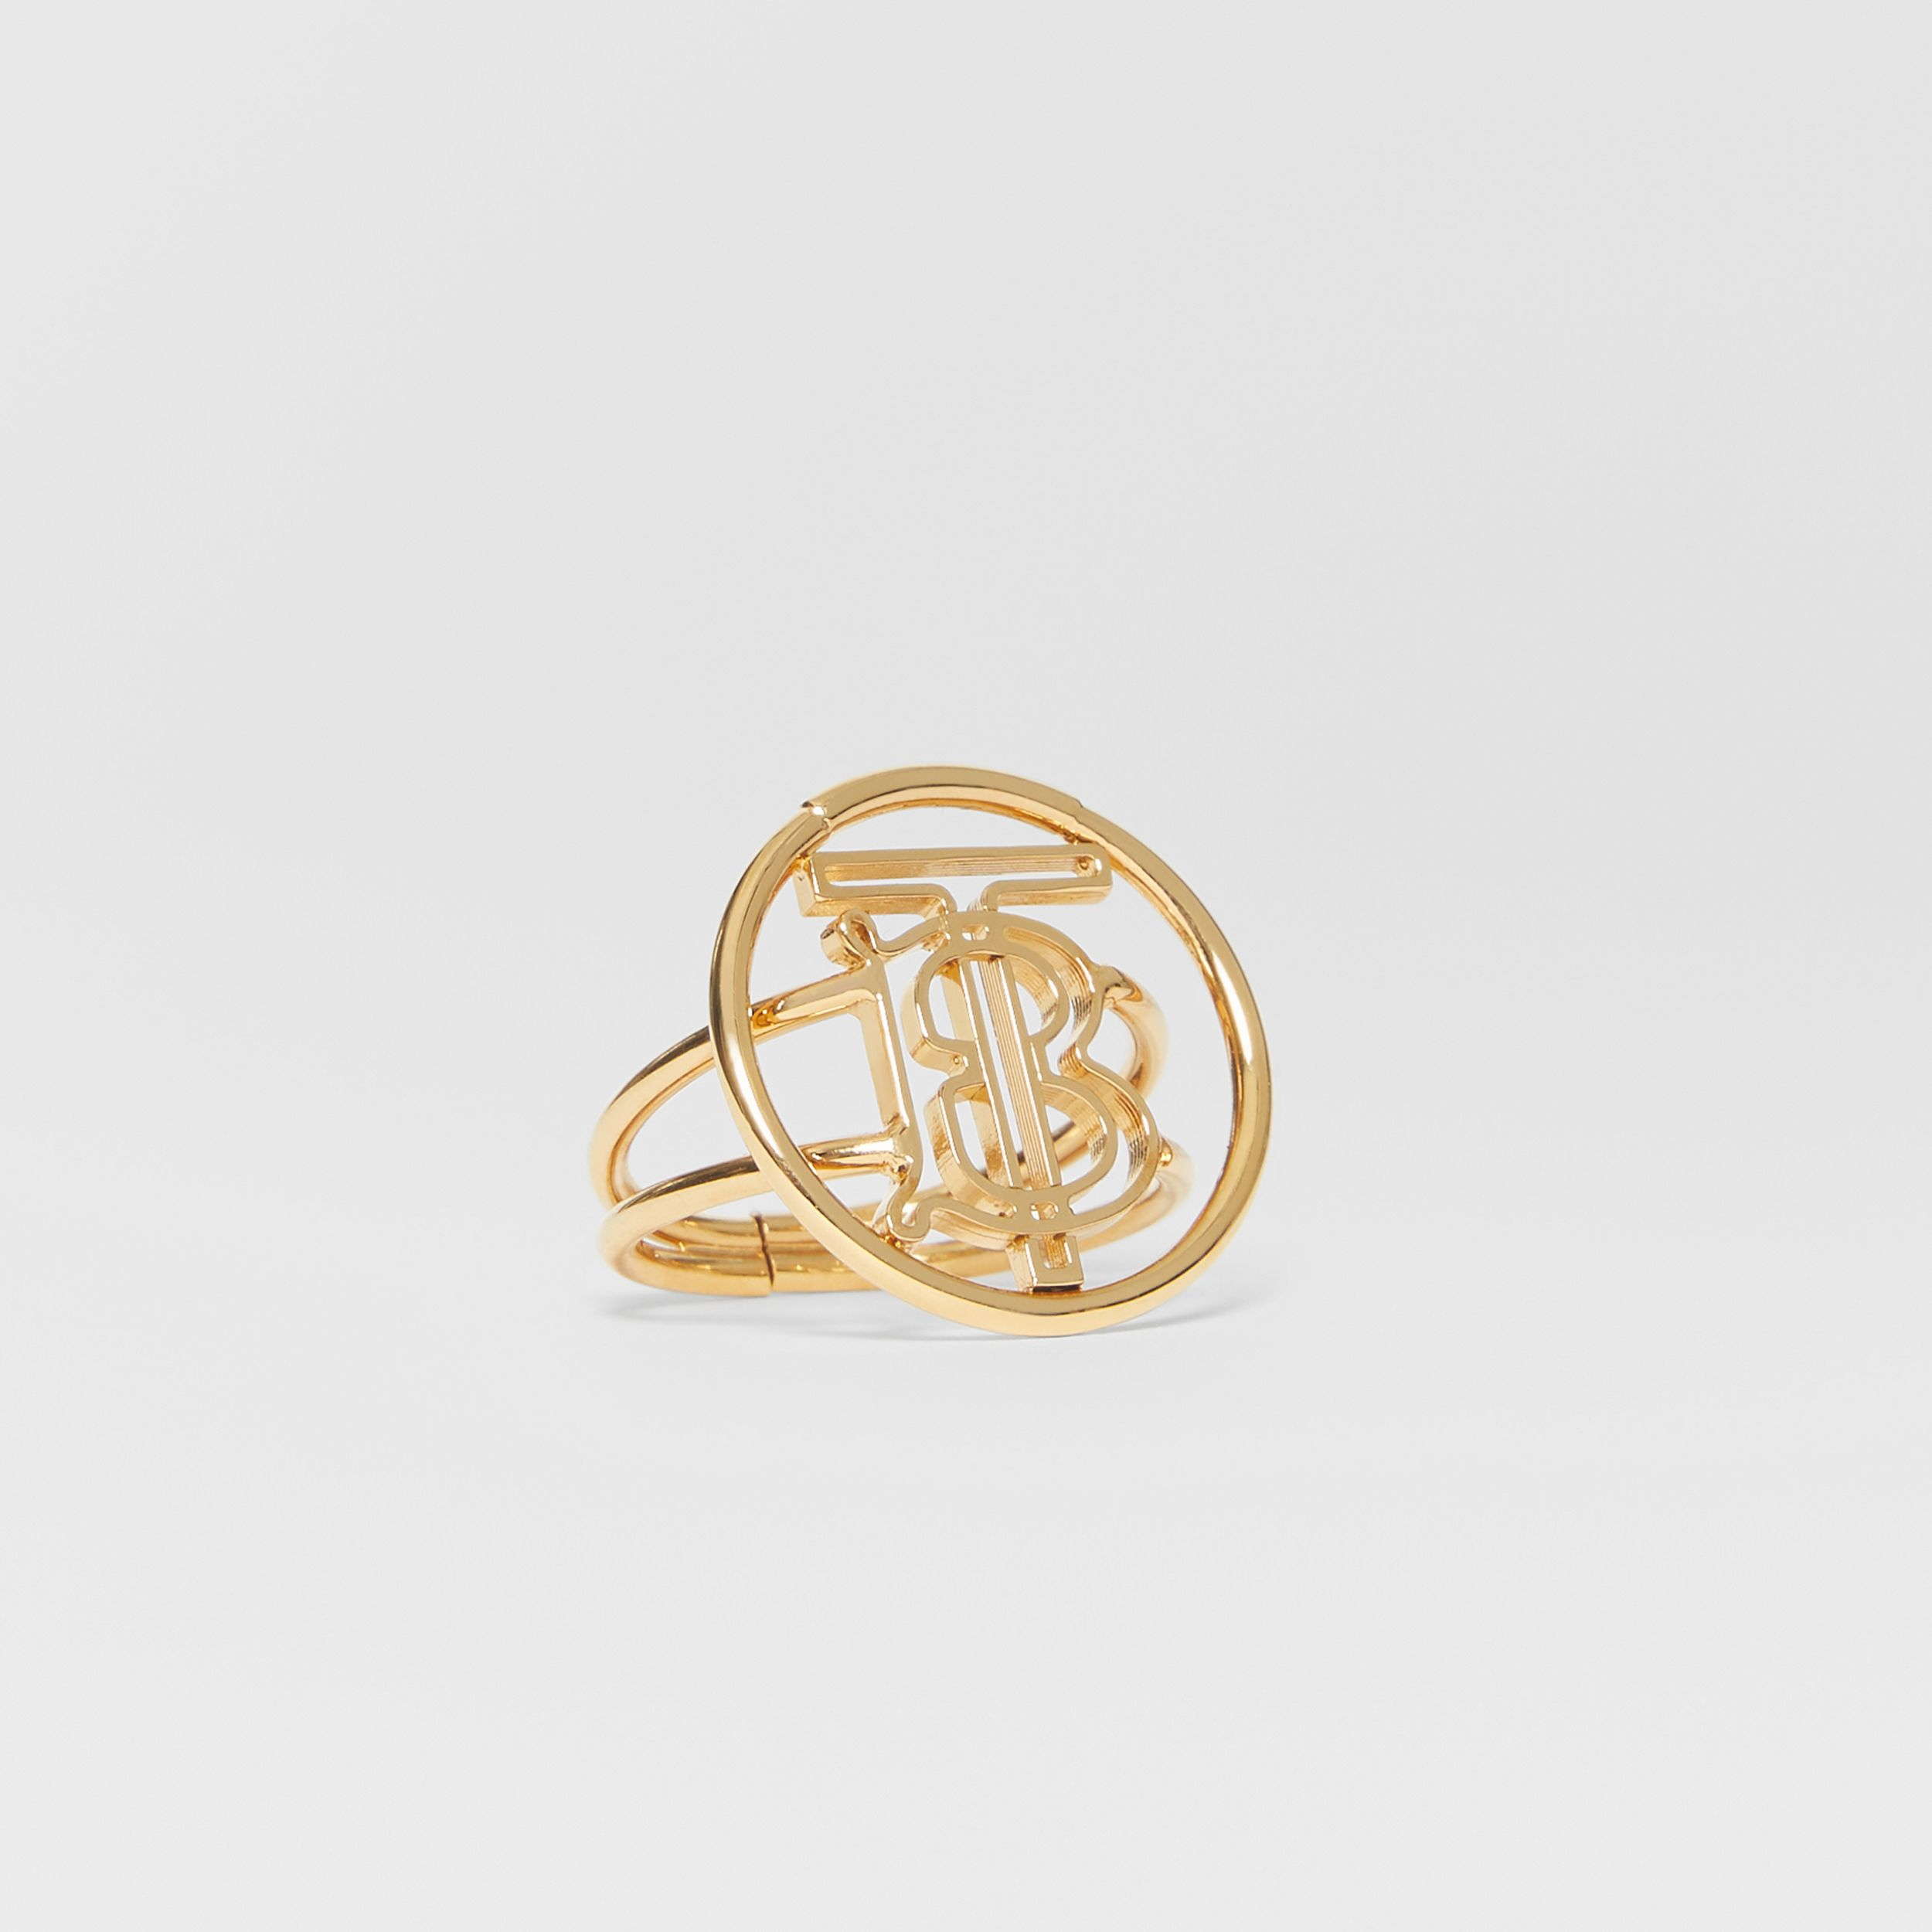 Large Gold-plated Monogram Motif Ring in Light - Women | Burberry - 3